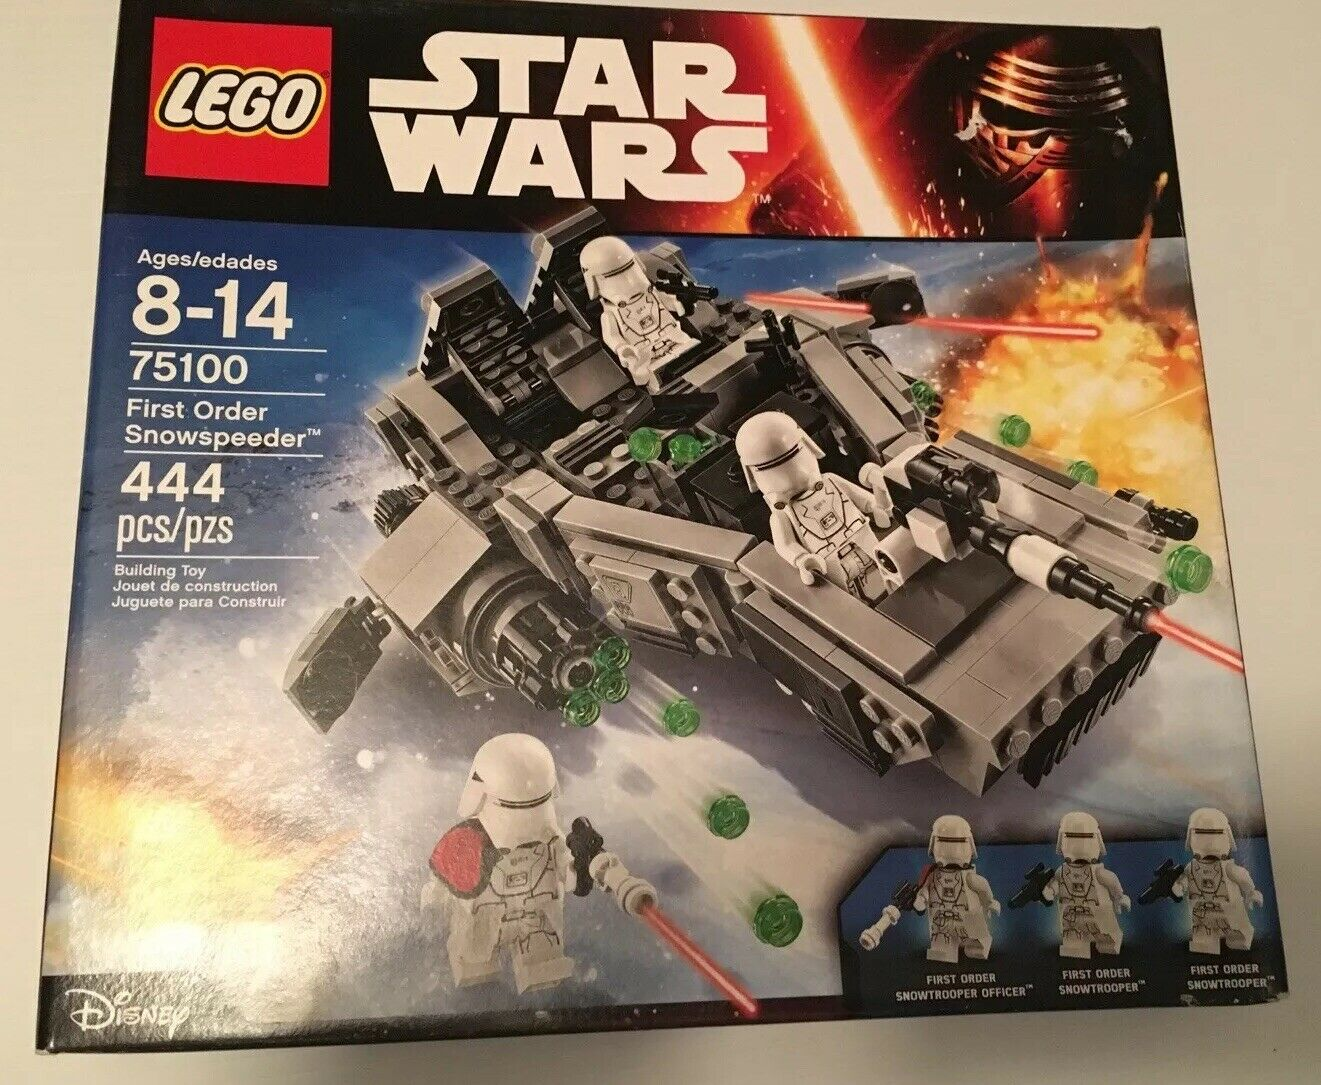 *NO MINIFIGURES* NEW LEGO Star Wars 75100 First Order Snowspeeder with manual